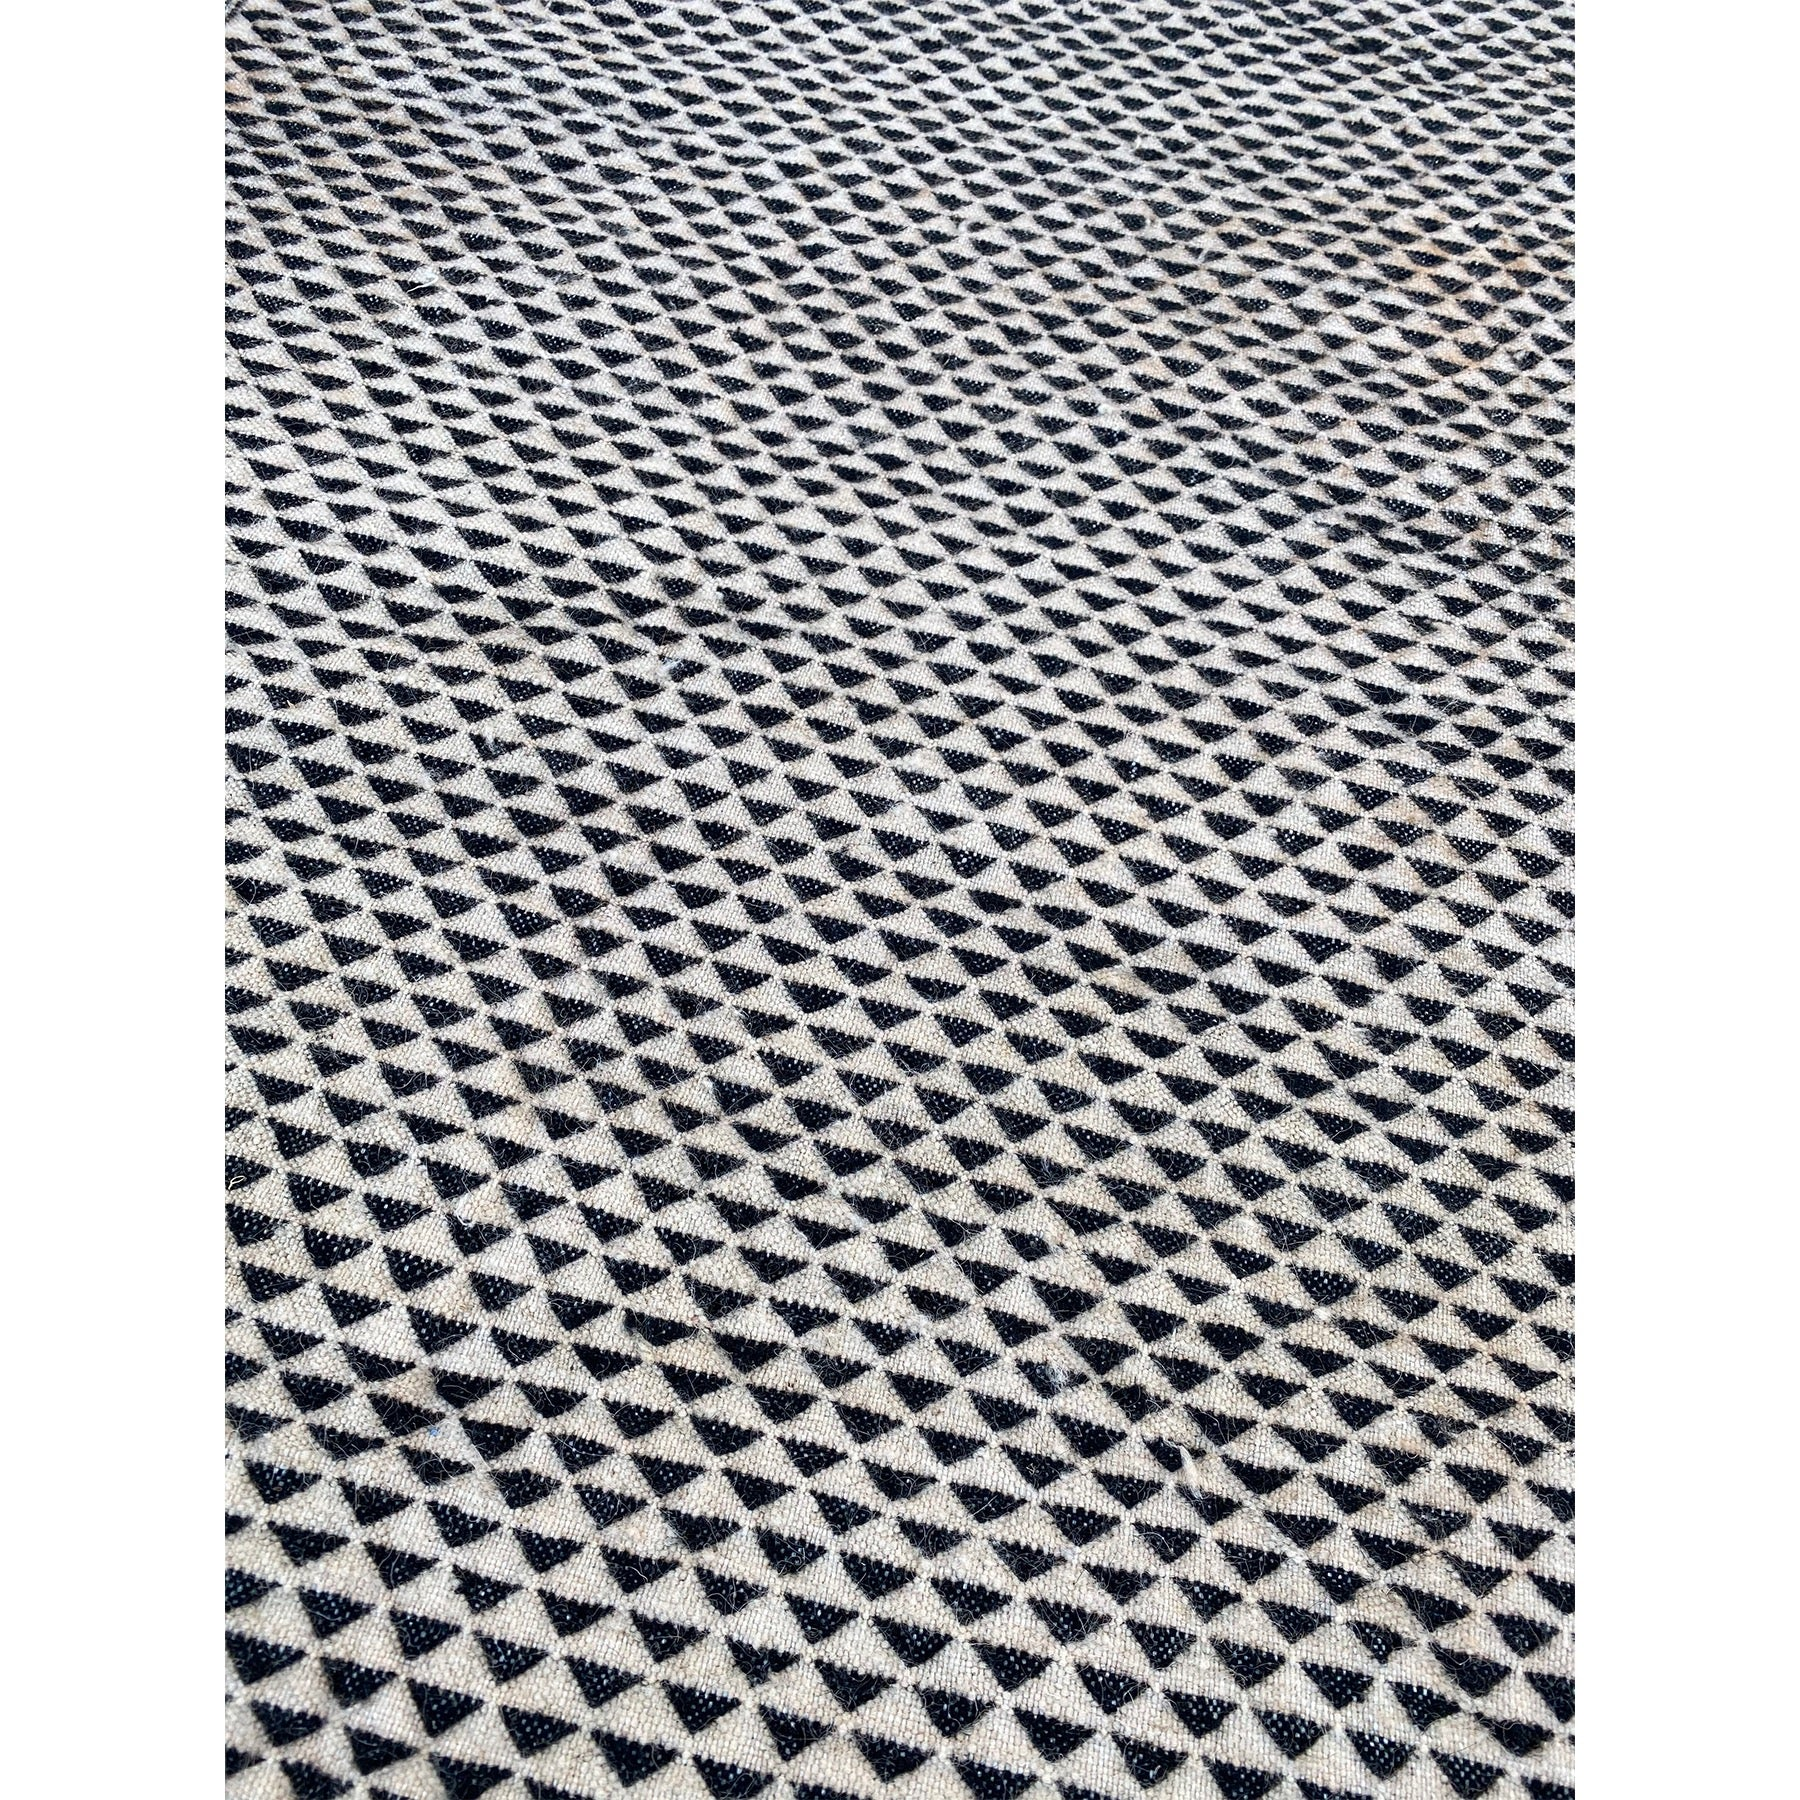 White and black flatweave kilim with geometric triangle pattern - Kantara | Moroccan Rugs